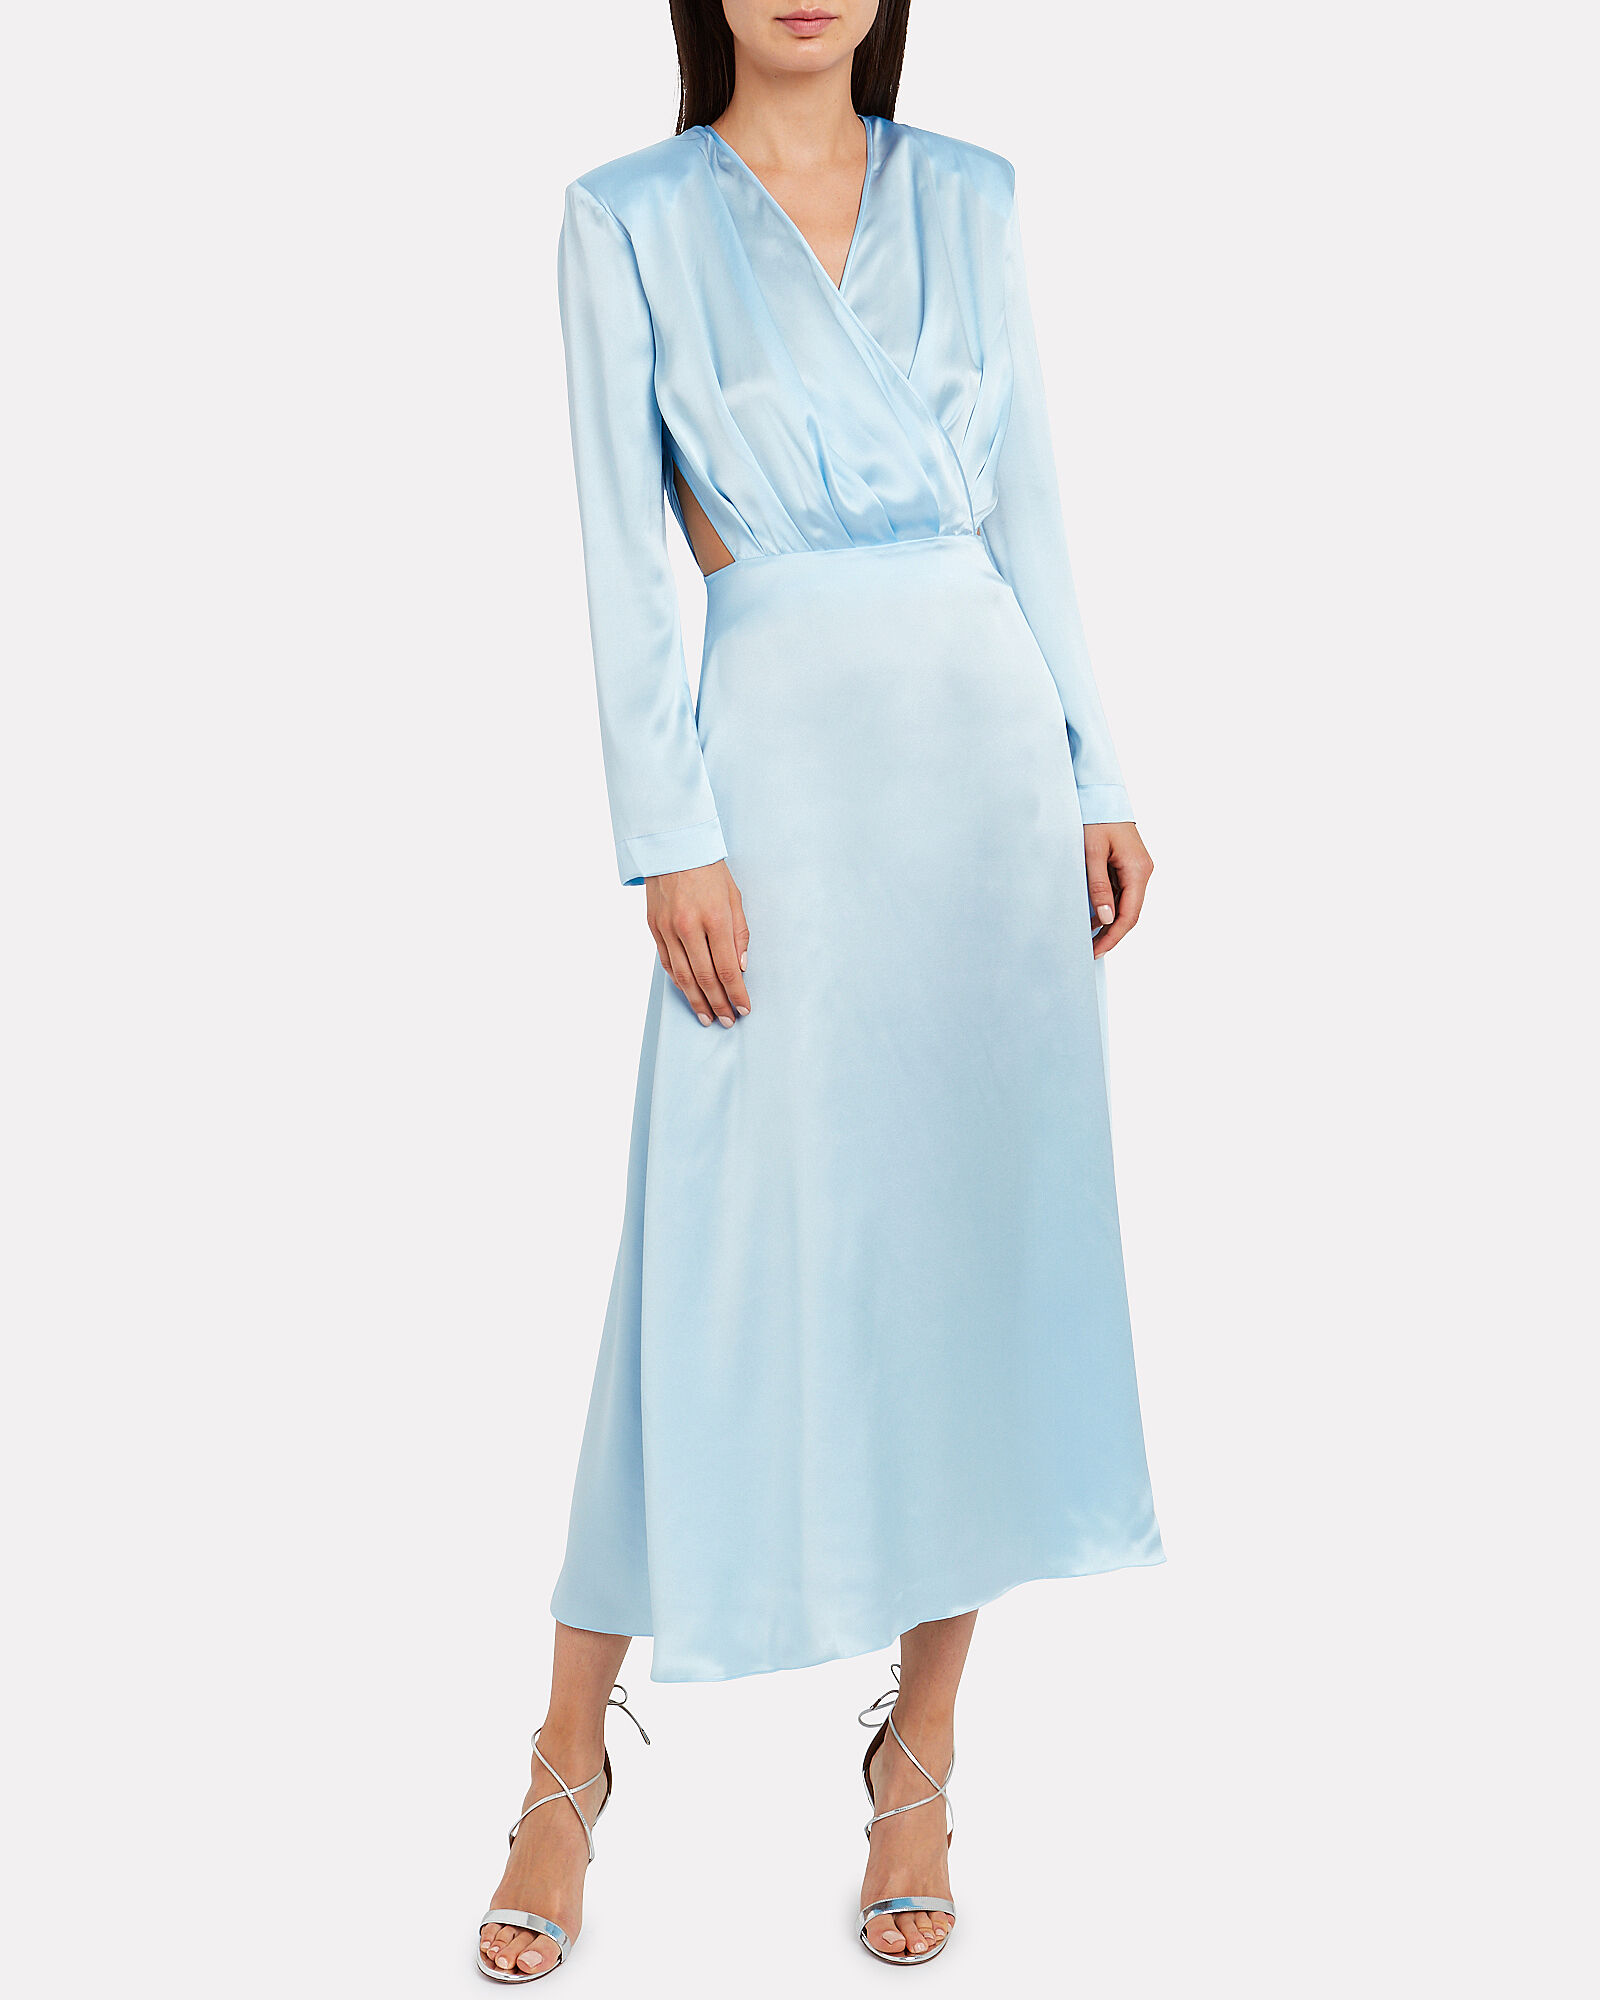 Satin Cut-Out Long Sleeve Dress, BLUE-LT, hi-res